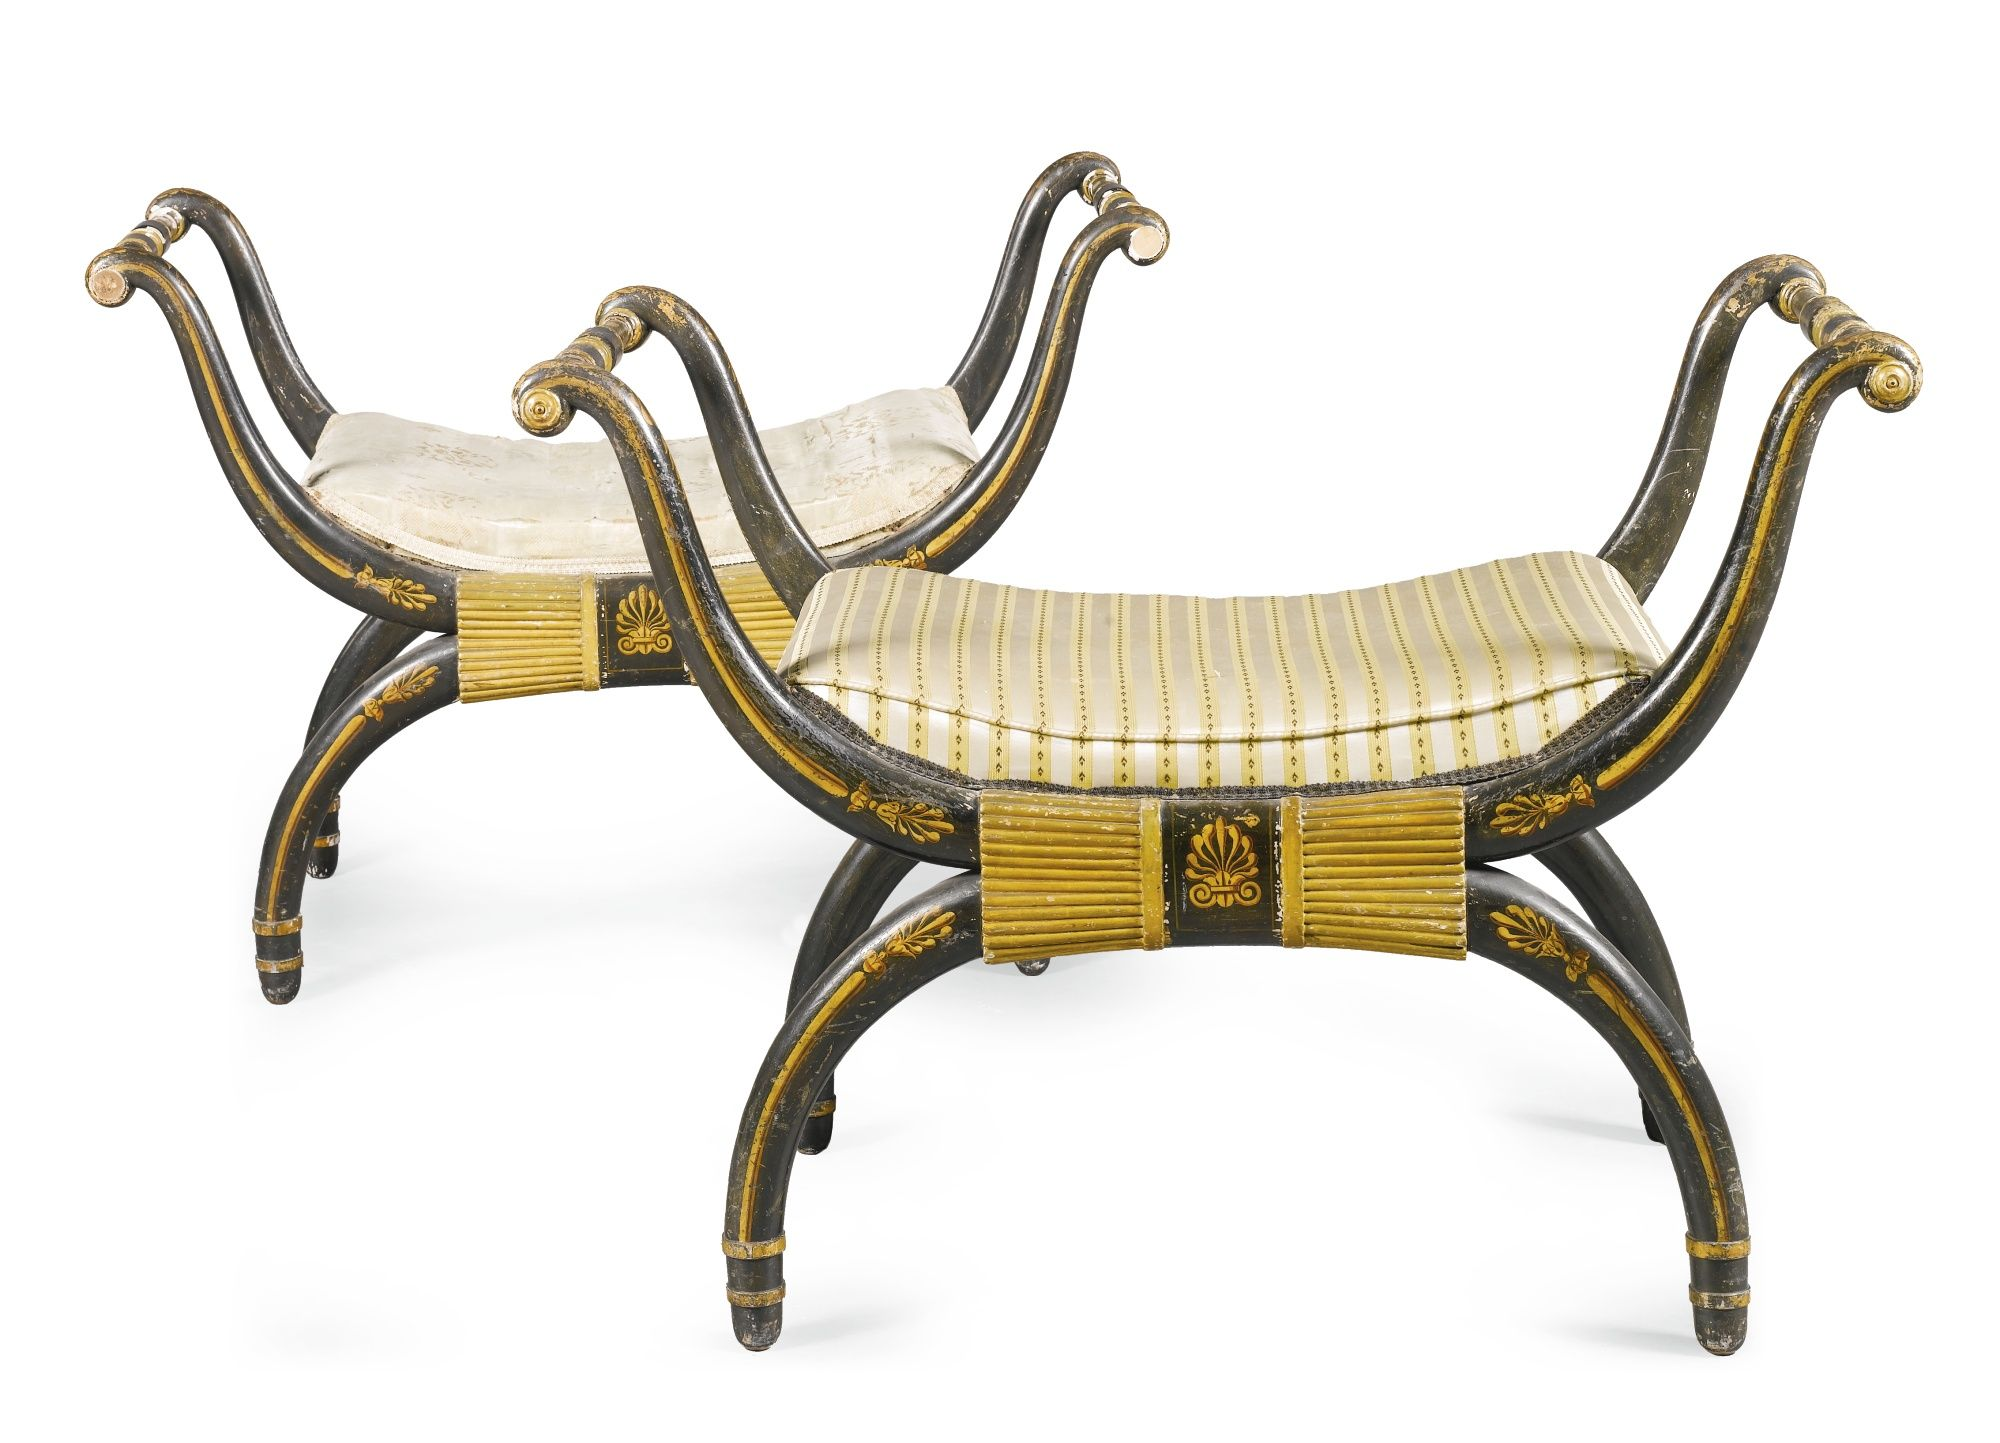 Thomas Hope Muebles - A Pair Of Regency Ebonised And Parcel Gilt Stools In The Manner [mjhdah]https://s-media-cache-ak0.pinimg.com/originals/39/0f/4f/390f4fa7627420ee64cf2912ca915d4d.jpg